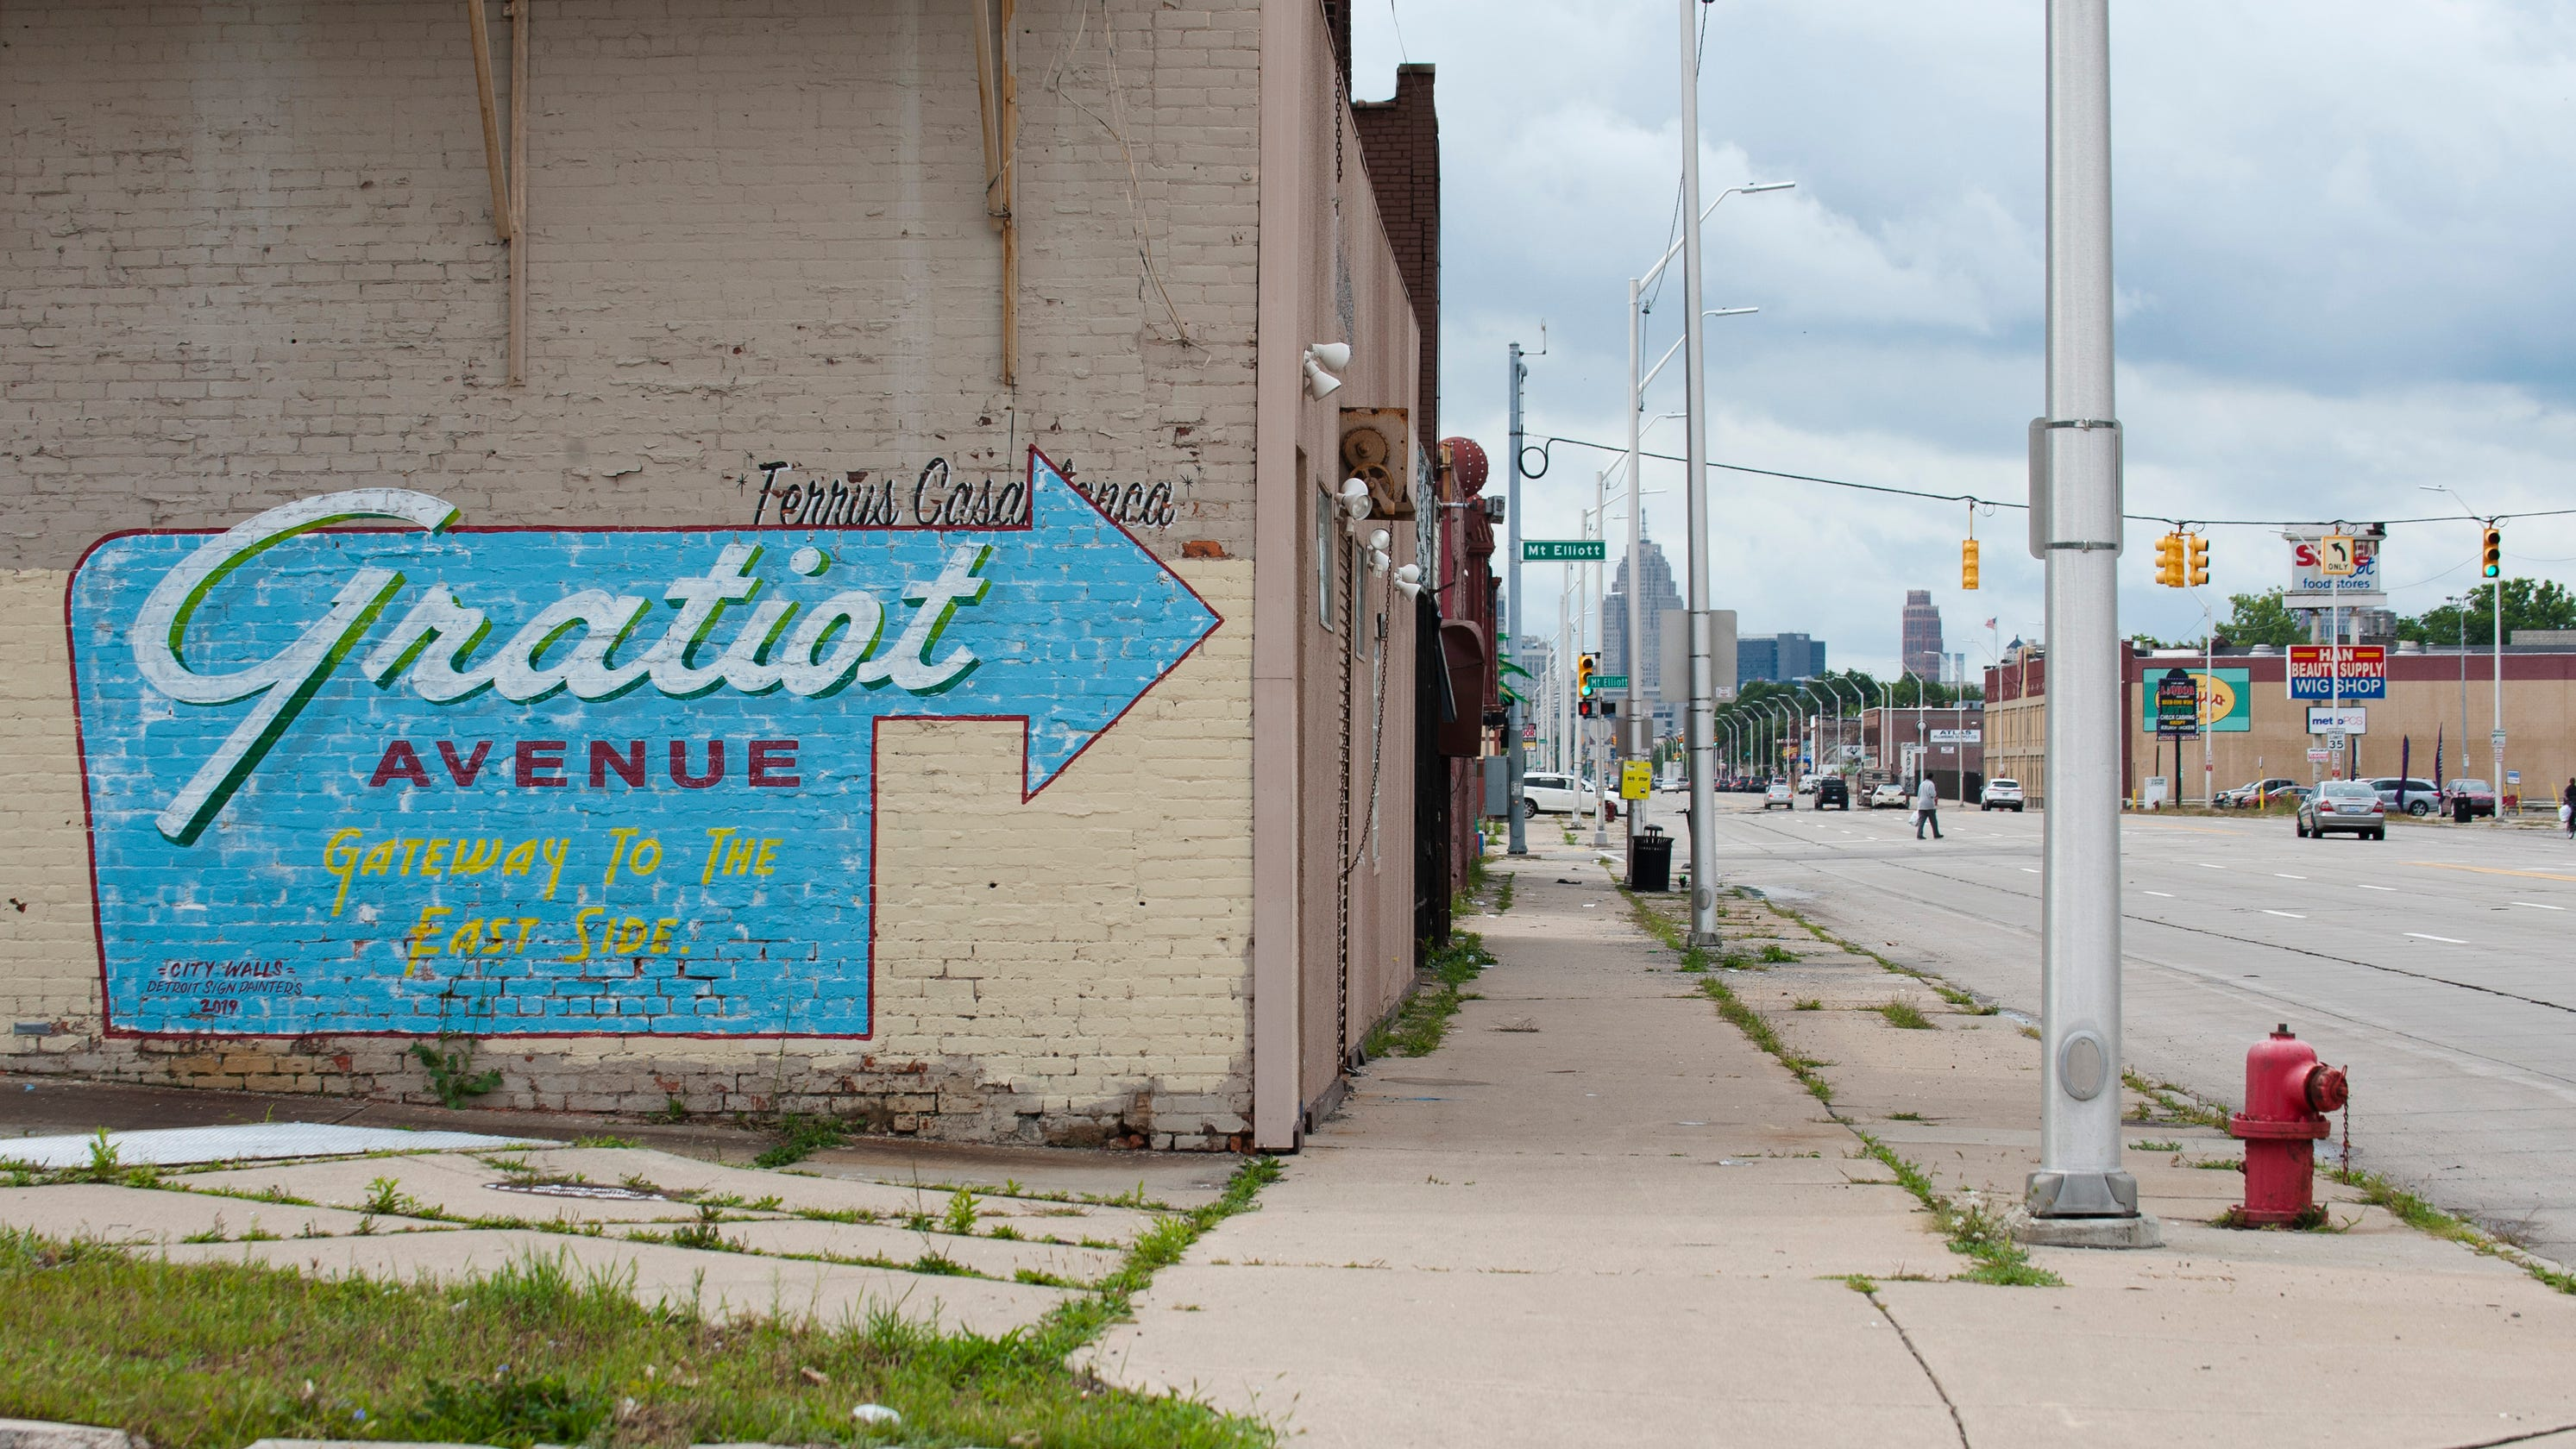 It gets really bad after dark': Crime persists on Gratiot in ... Map Of Northeast Detroit on map of westside detroit, map of highland park, map of hamtramck, map of midtown detroit, map of metro detroit, map of traverse city, map of palmer lake, map of grand rapids, map of saginaw, map of lansing, map of downtown detroit, map of city of detroit,